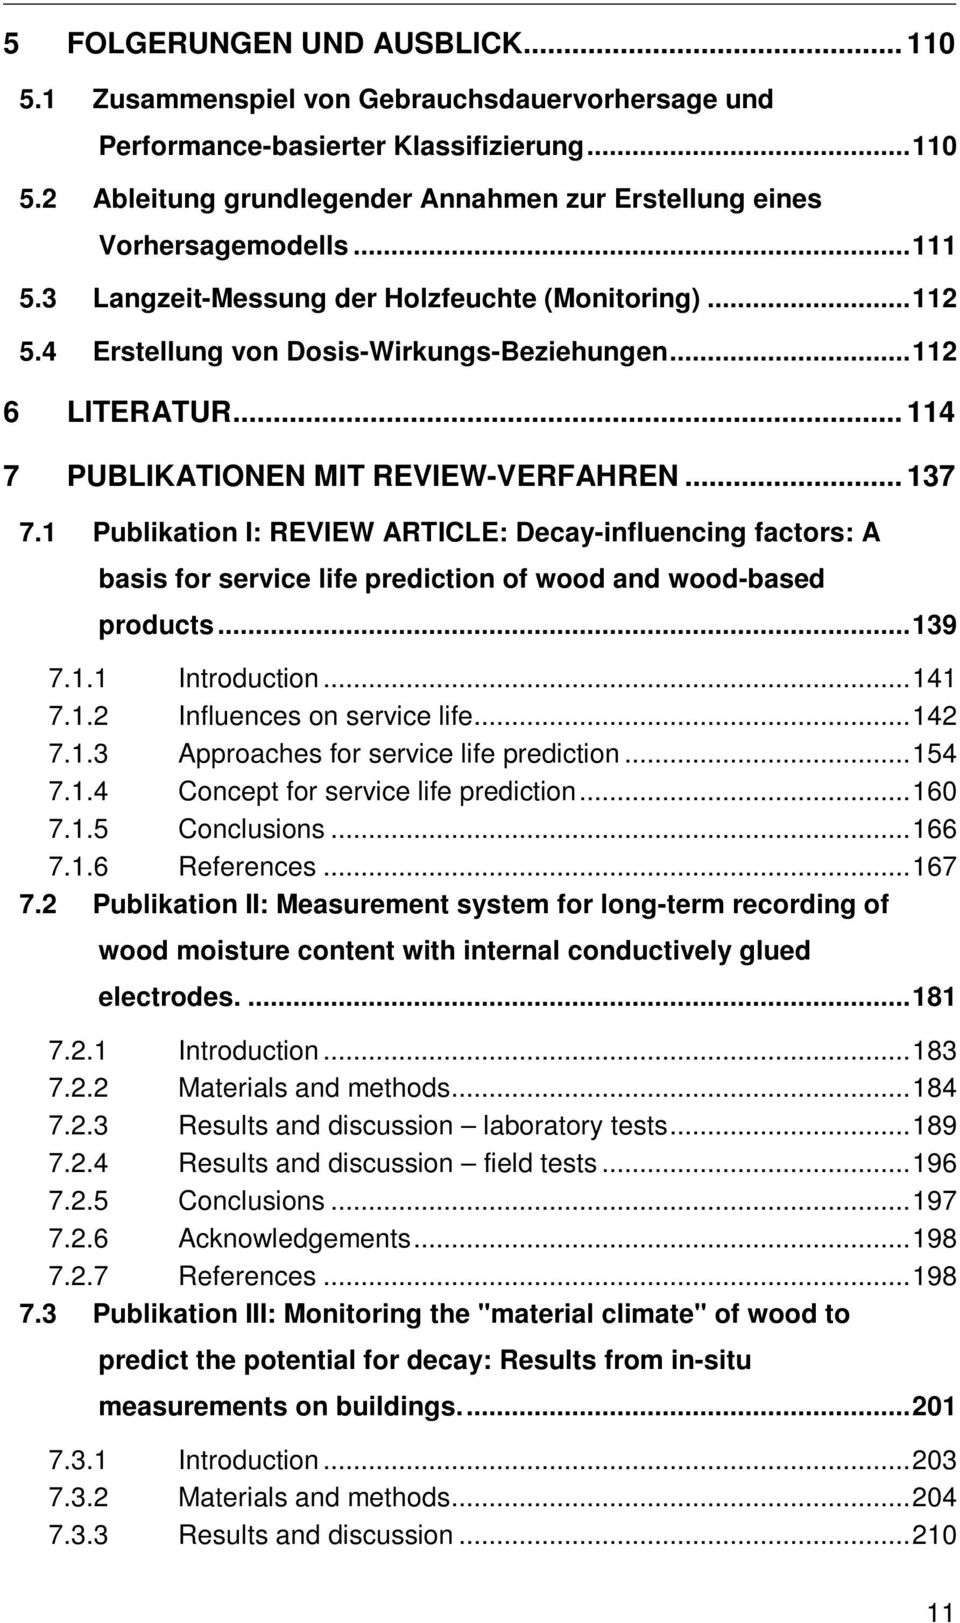 1 Publikation I: REVIEW ARTICLE: Decay-influencing factors: A basis for service life prediction of wood and wood-based products... 139 7.1.1 Introduction... 141 7.1.2 Influences on service life.